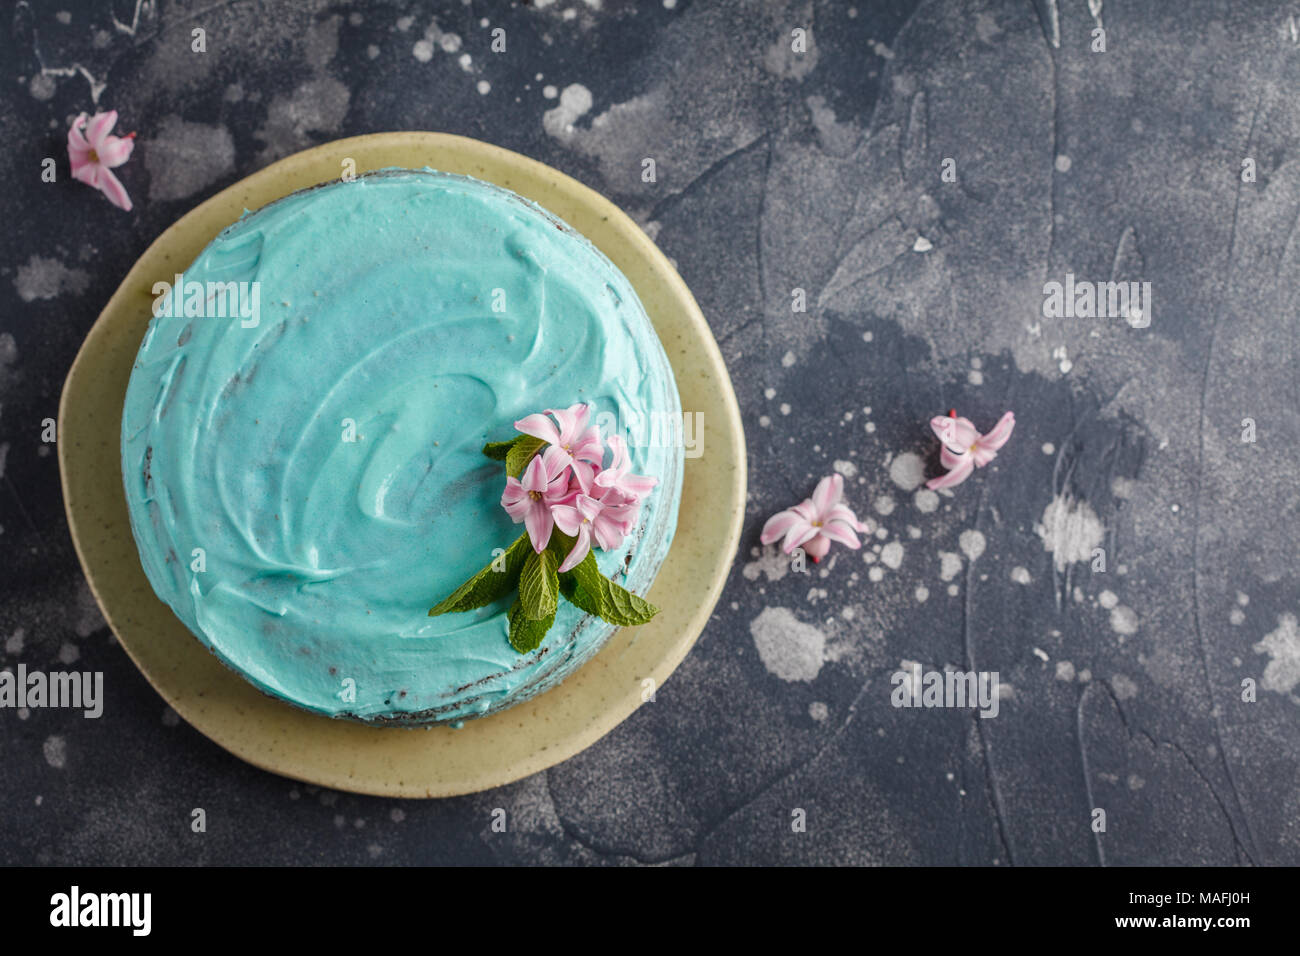 Blue stylish cake with flowers and mint. Copy space, dark background - Stock Image